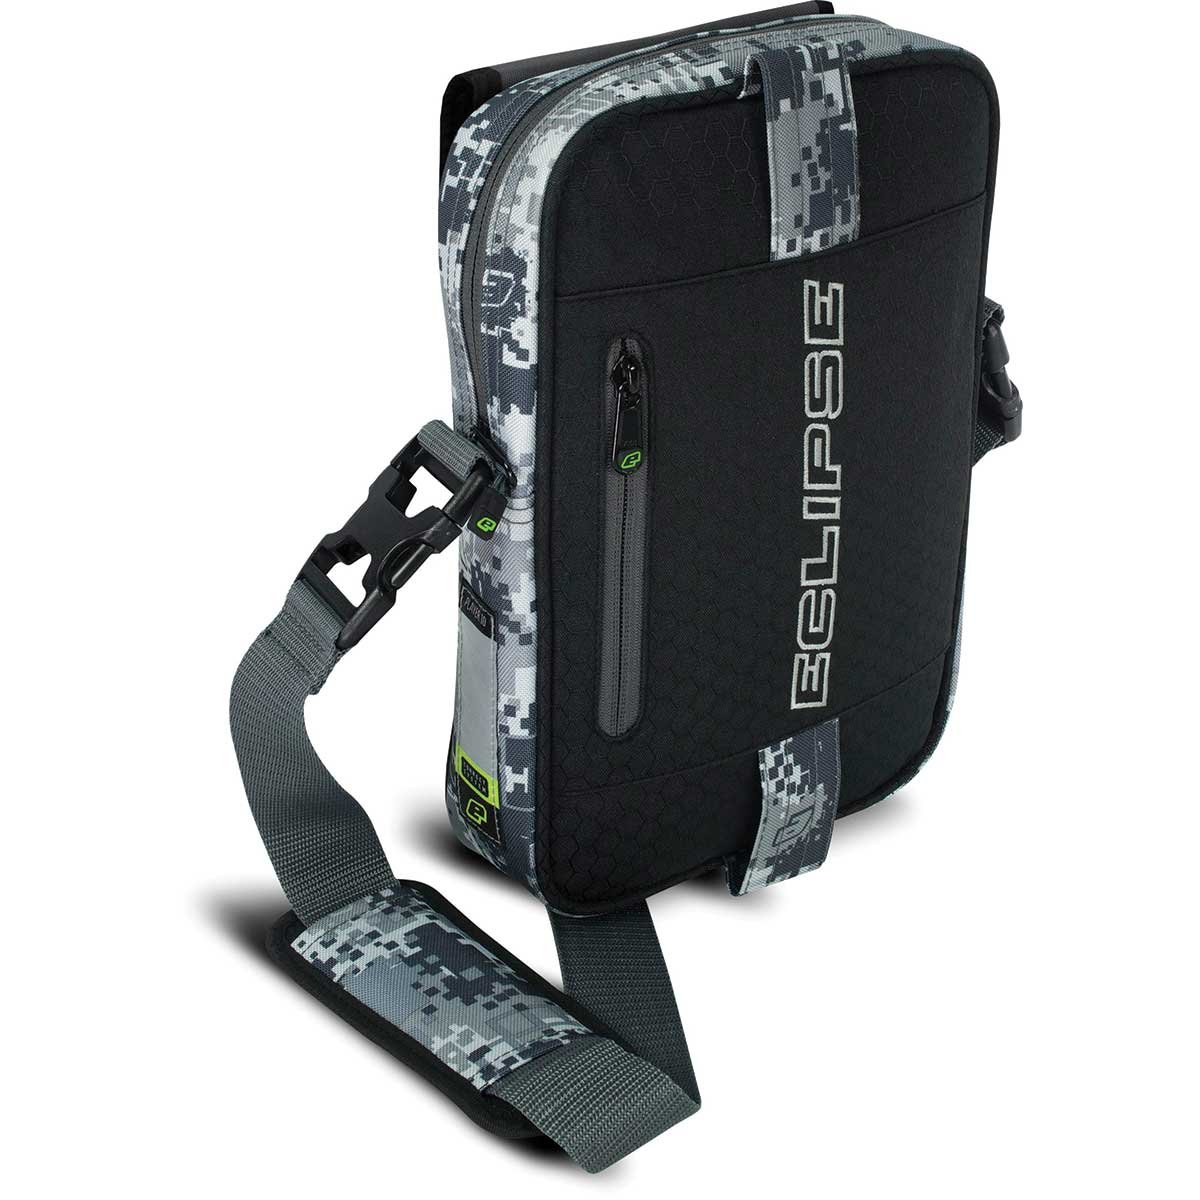 Planet Eclipse Paintball GX2 Marker Pack - HDE Urban